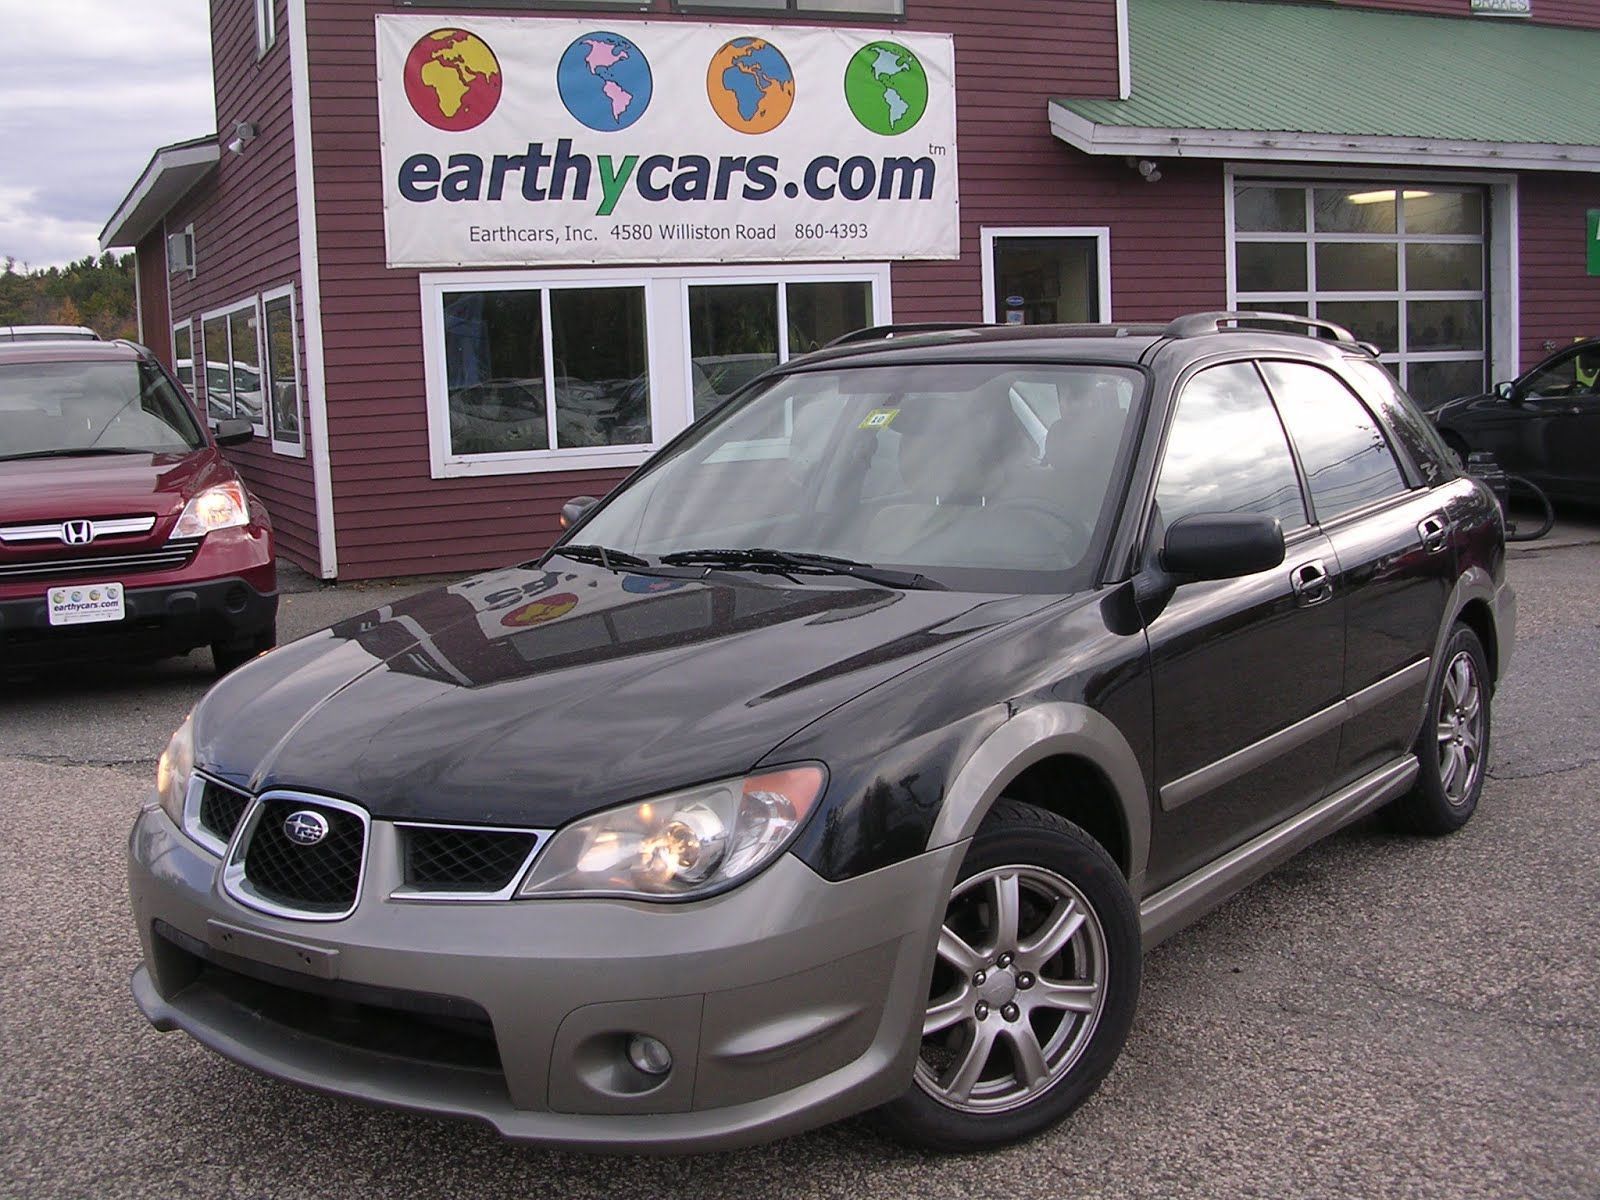 Earthy cars blog earthy car of the week black 2006 subaru earthy car of the week black 2006 subaru impreza outback wagon vanachro Images